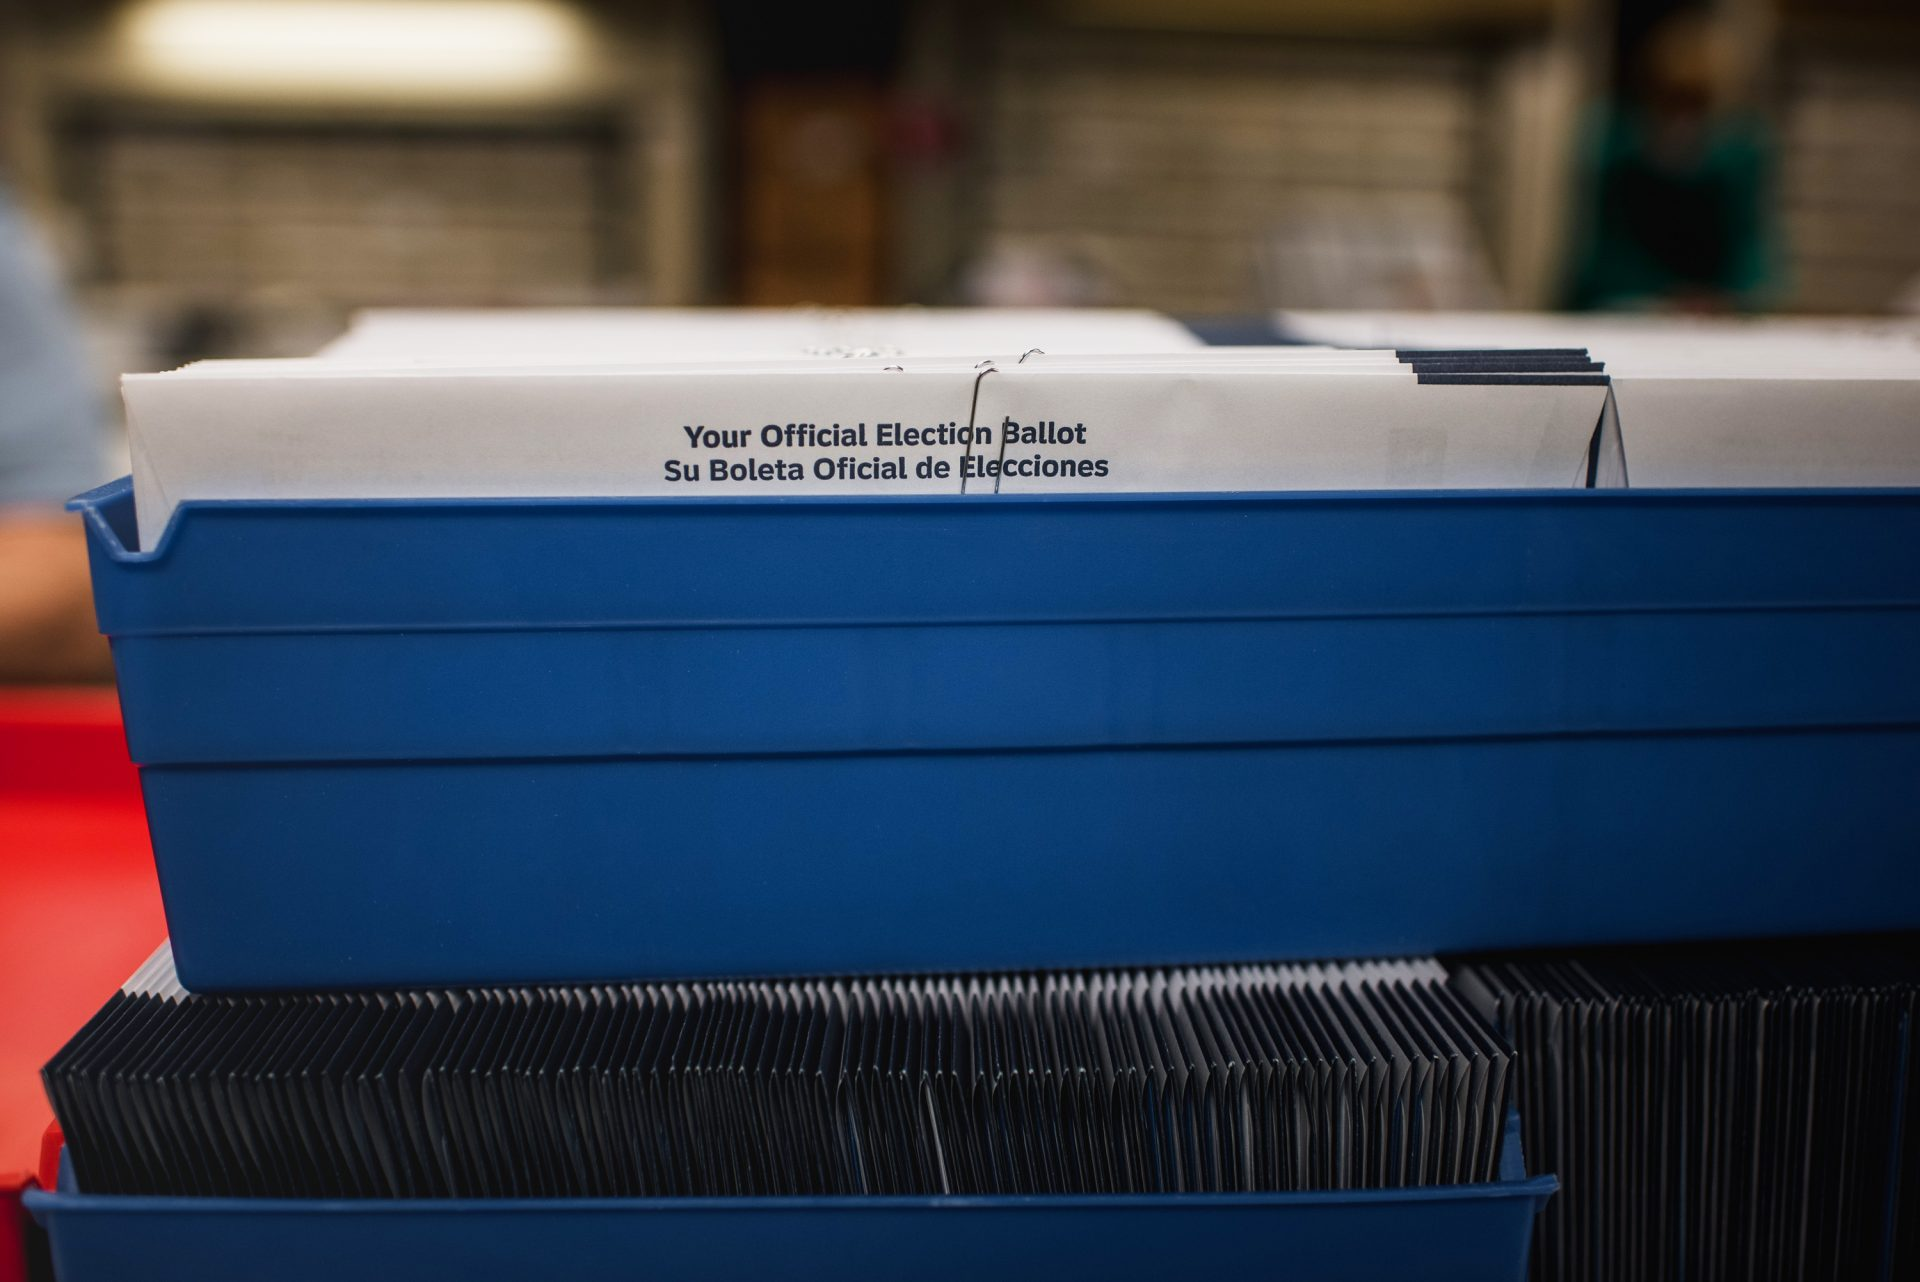 Election ballots sit in a bin at the Voter Registration office in the Lehigh County Government Center in Allentown, PA., on Tuesday, September 15, 2020.